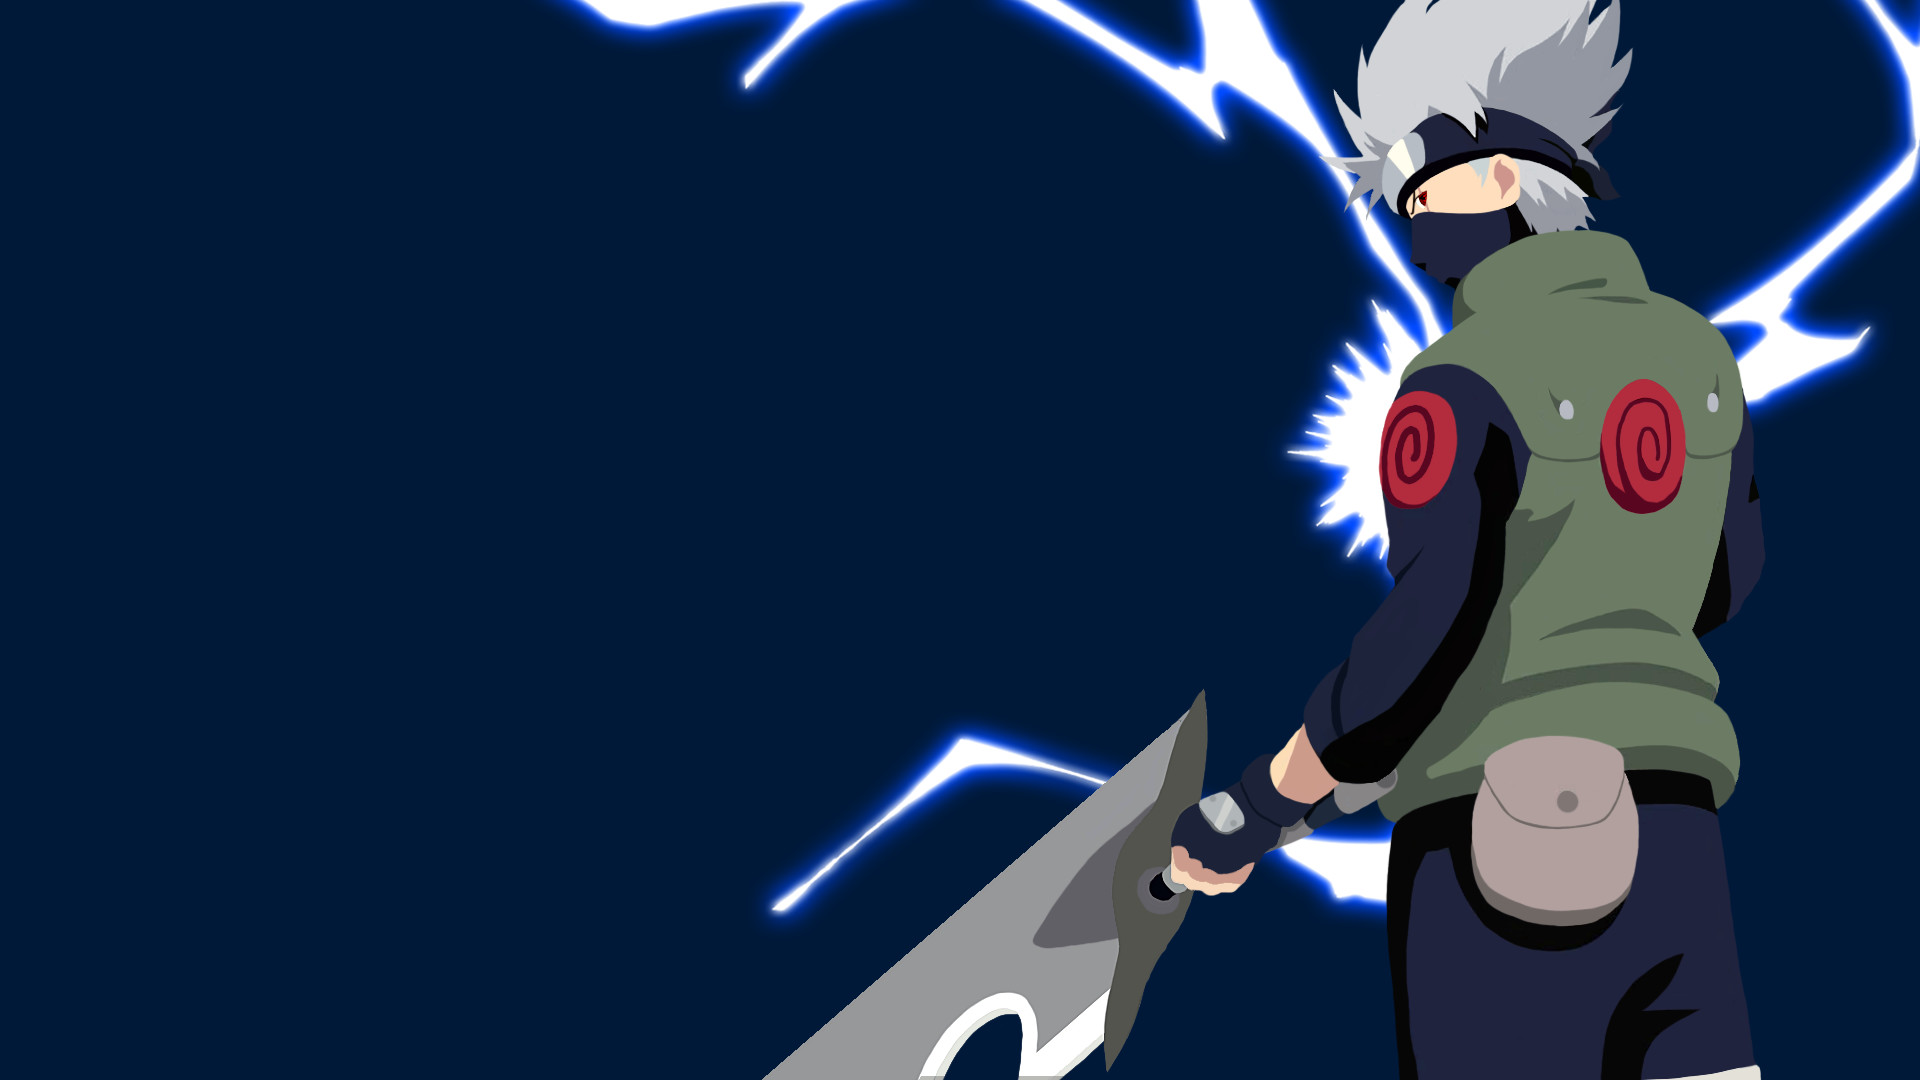 1920x1080 Video Game - Naruto Shippuden: Ultimate Ninja Storm Revolution Kakashi Hatake Naruto Wallpaper